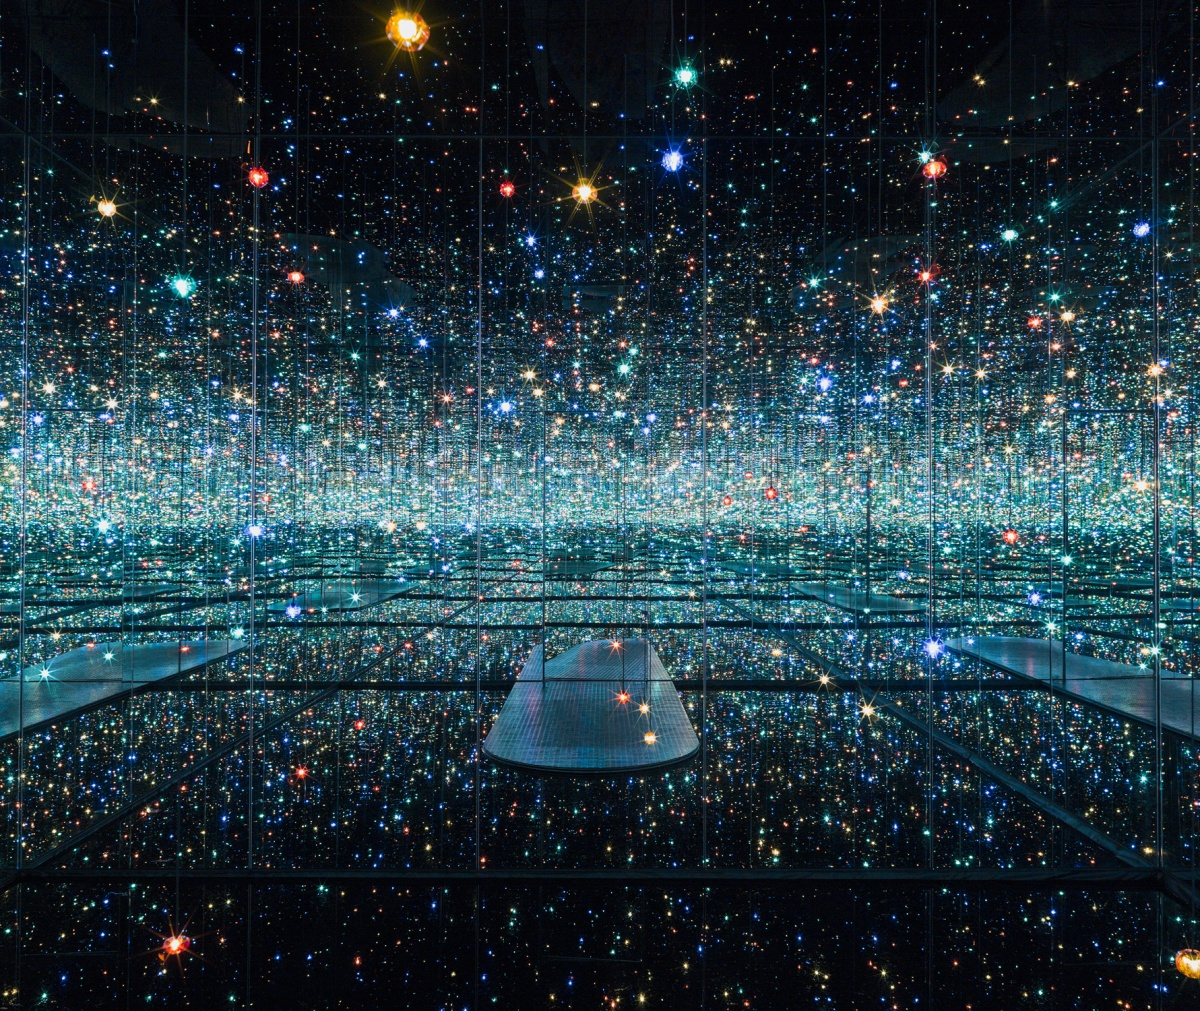 yayoi kusama's infinity room the souls of millions of light years away